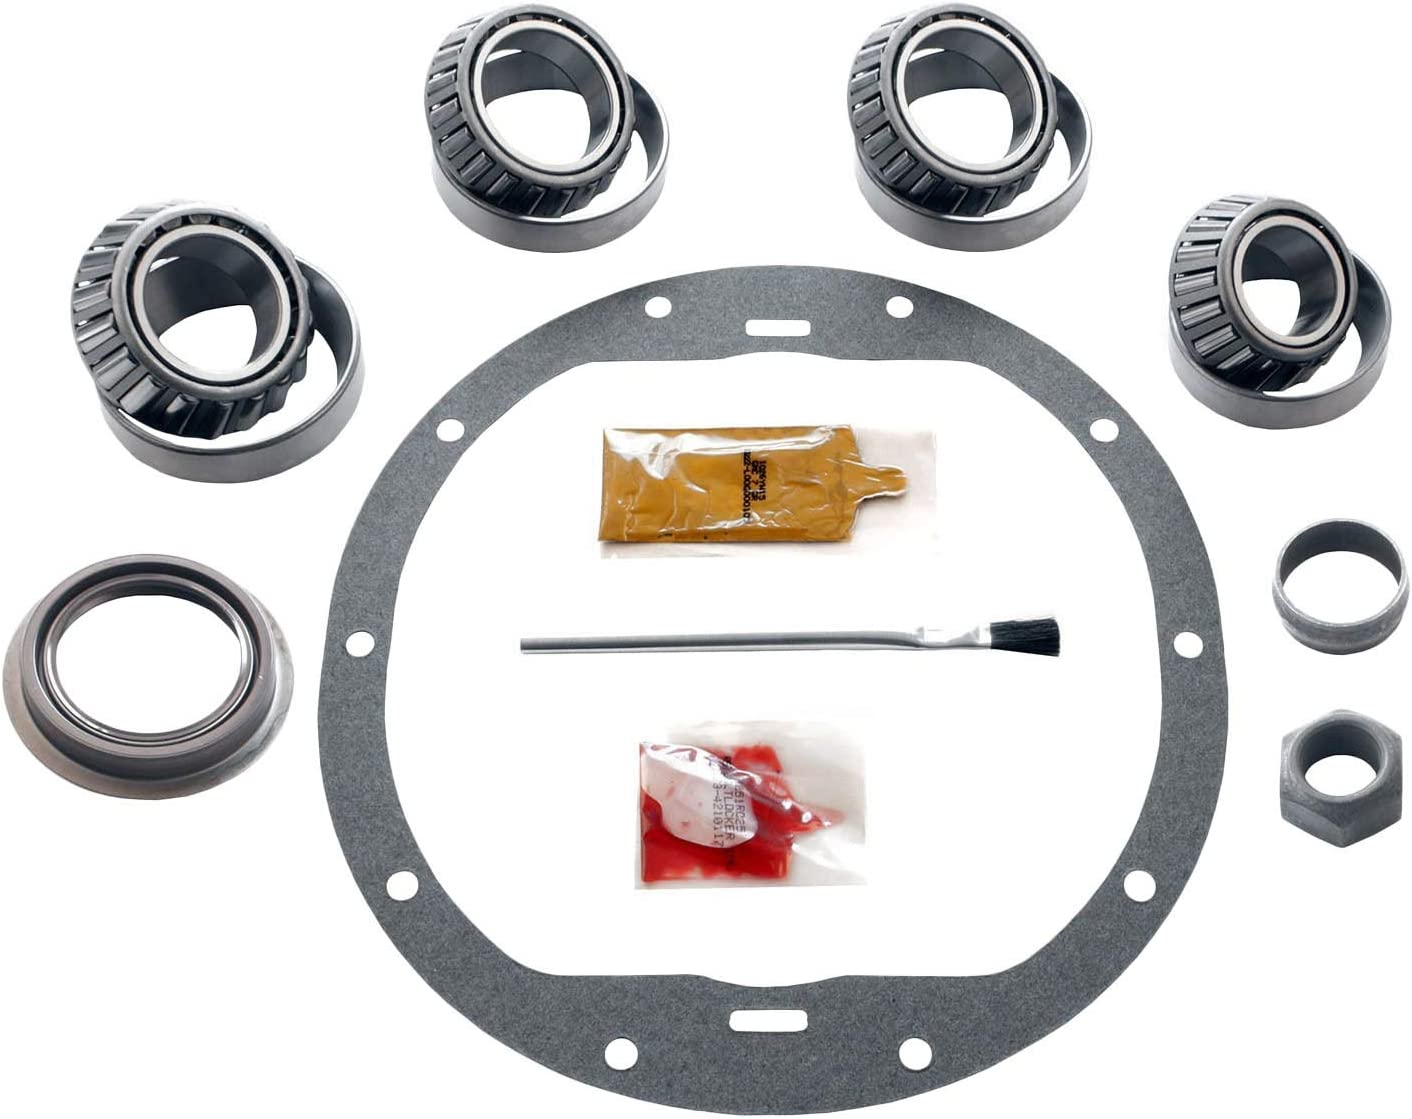 Motive Gear R10RL Complete Free Shipping Bearing Kit with GM ' 8.5